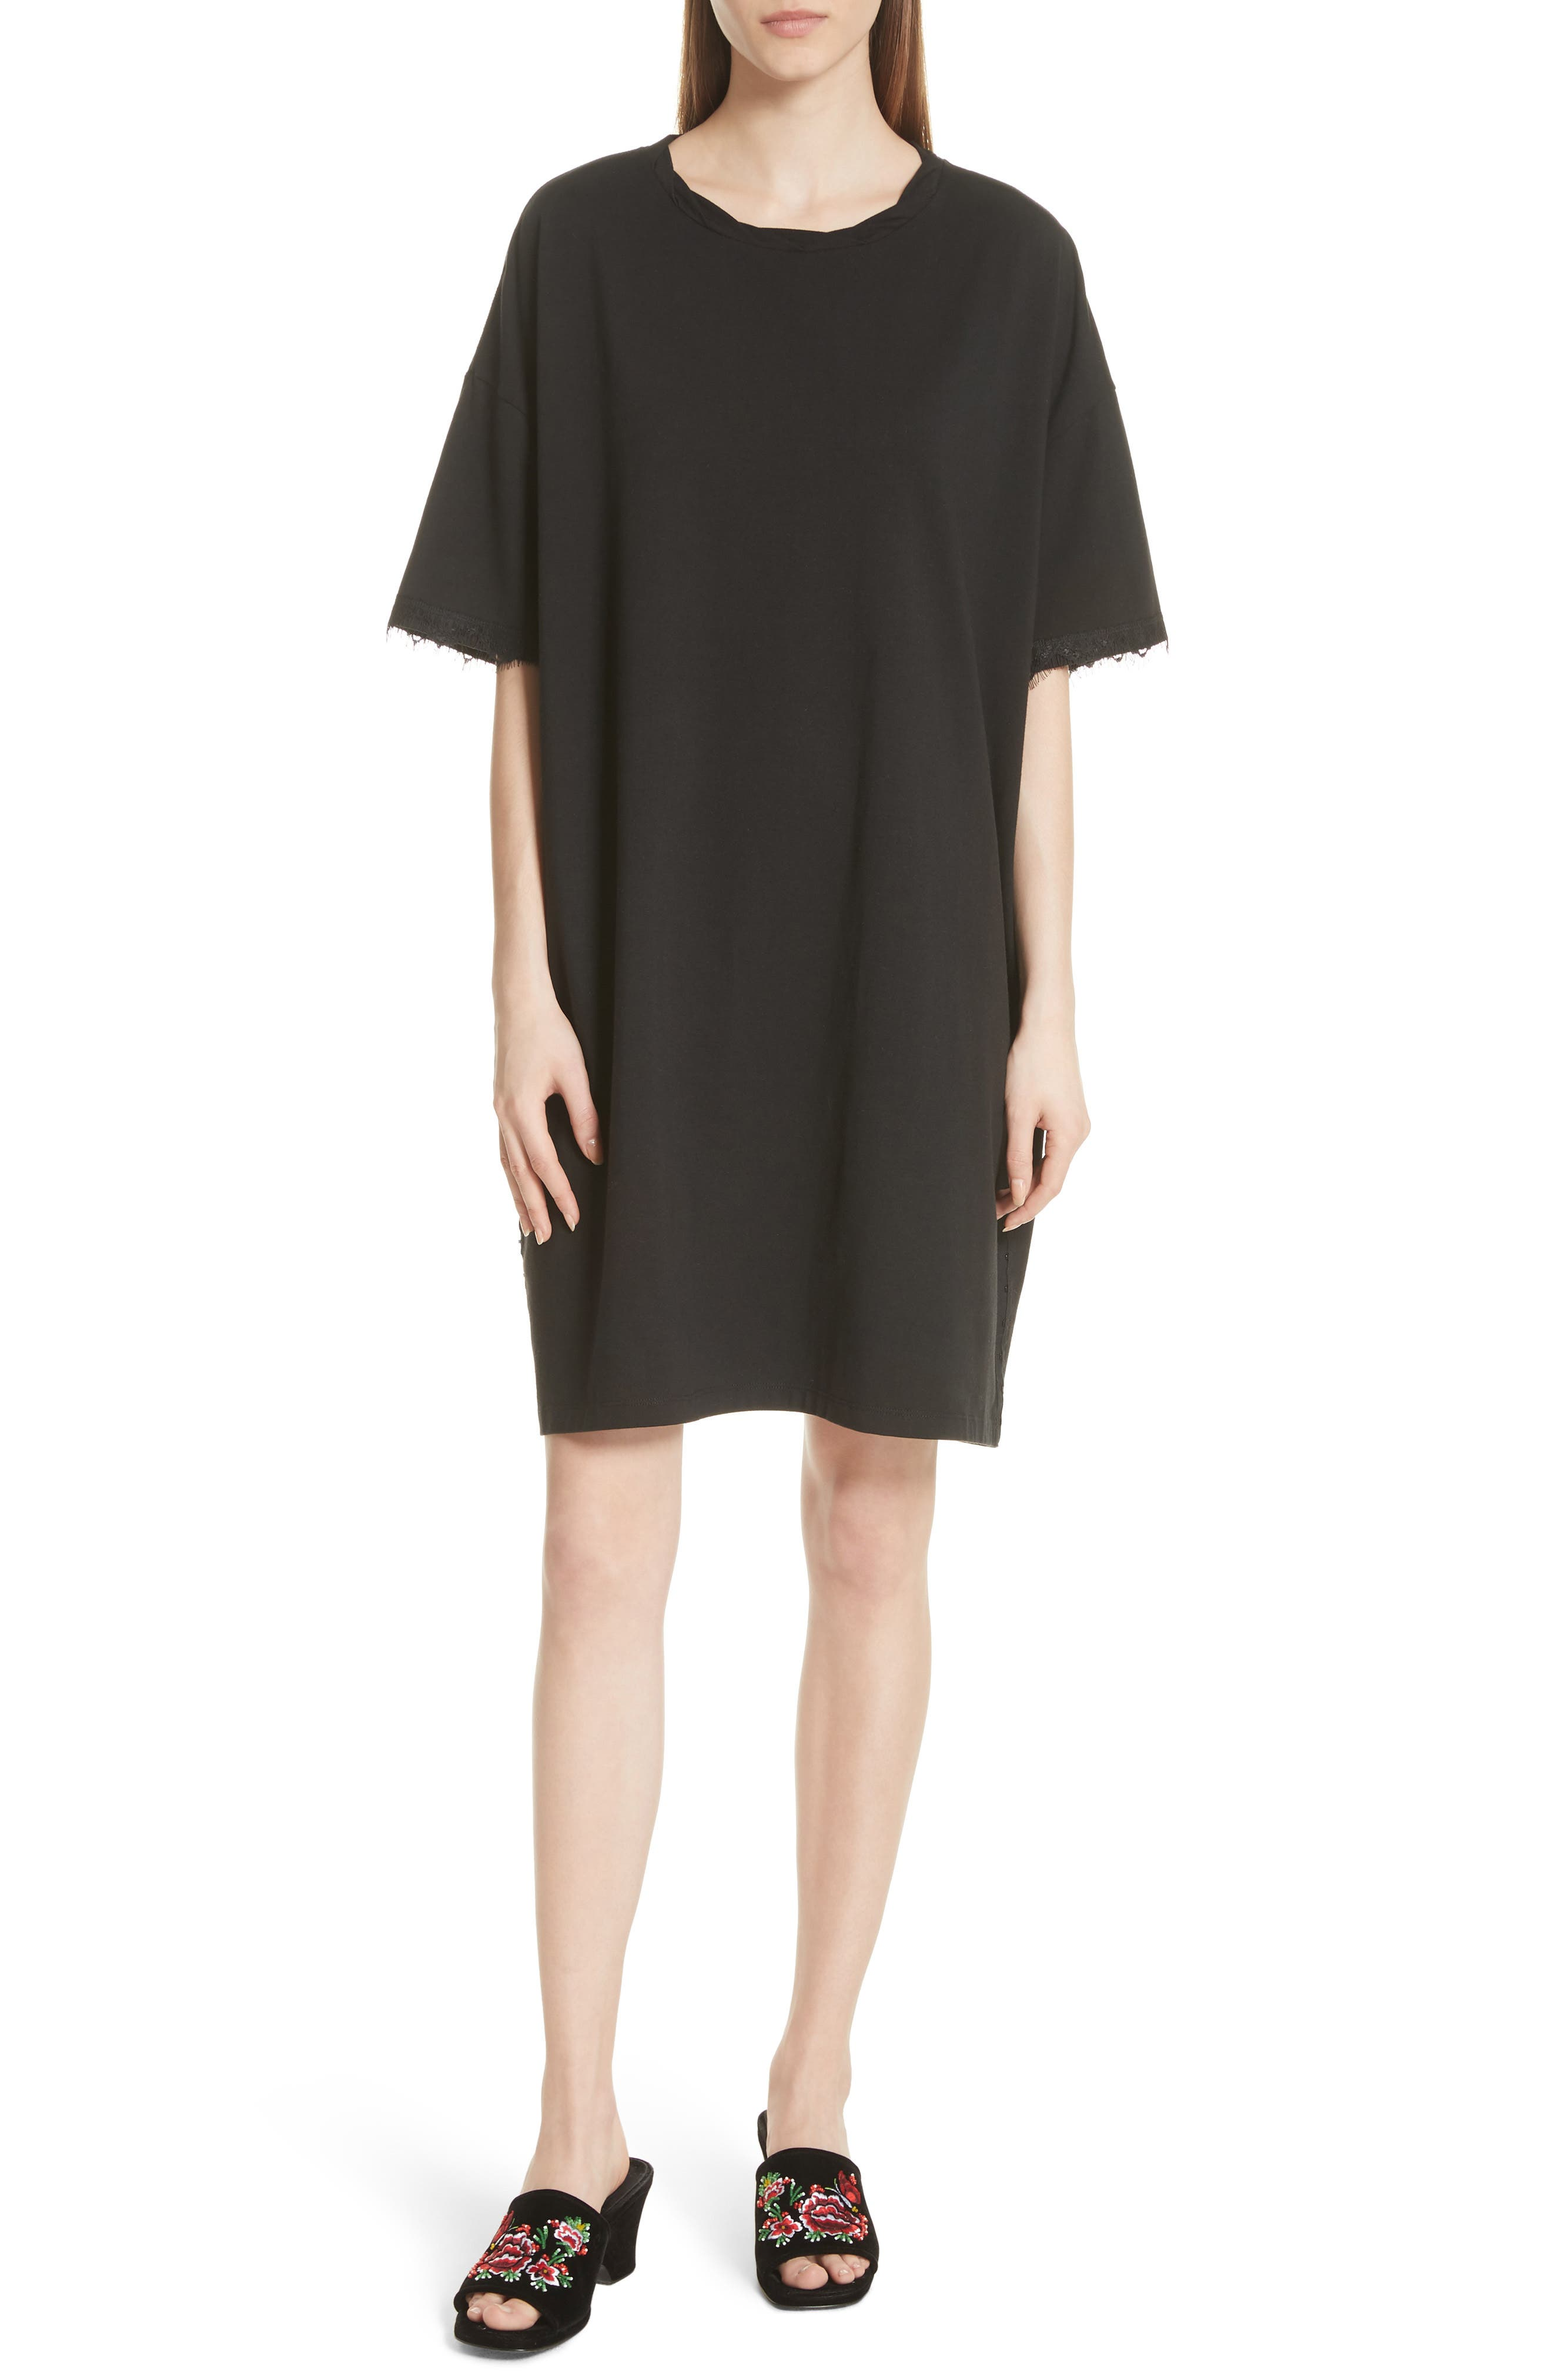 OPENING CEREMONY Hook-and-Eye T-Shirt Dress, Main, color, 014